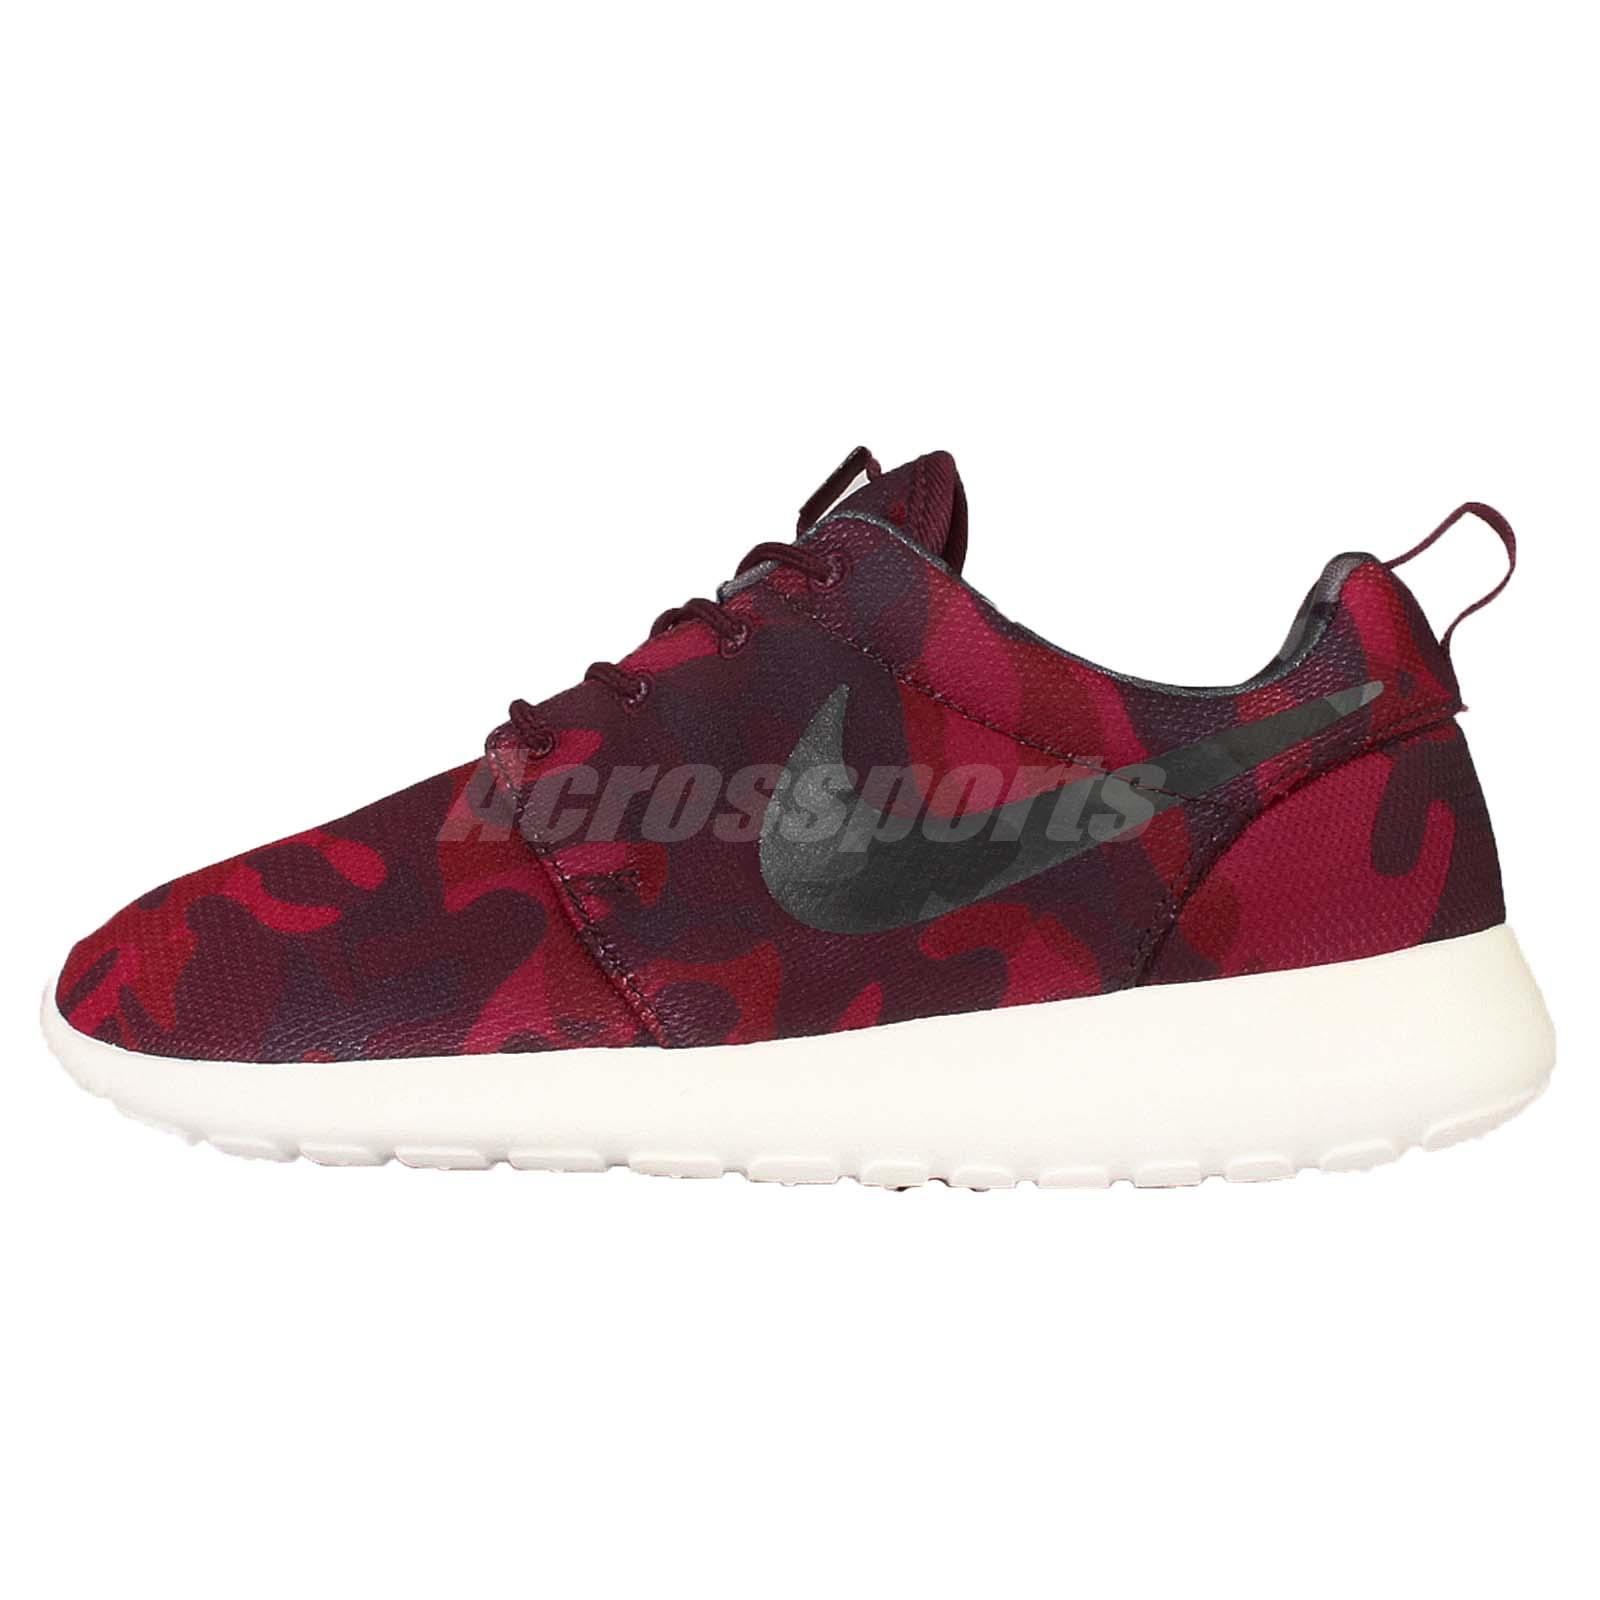 wmns nike roshe one print red camo rosherun womens running. Black Bedroom Furniture Sets. Home Design Ideas